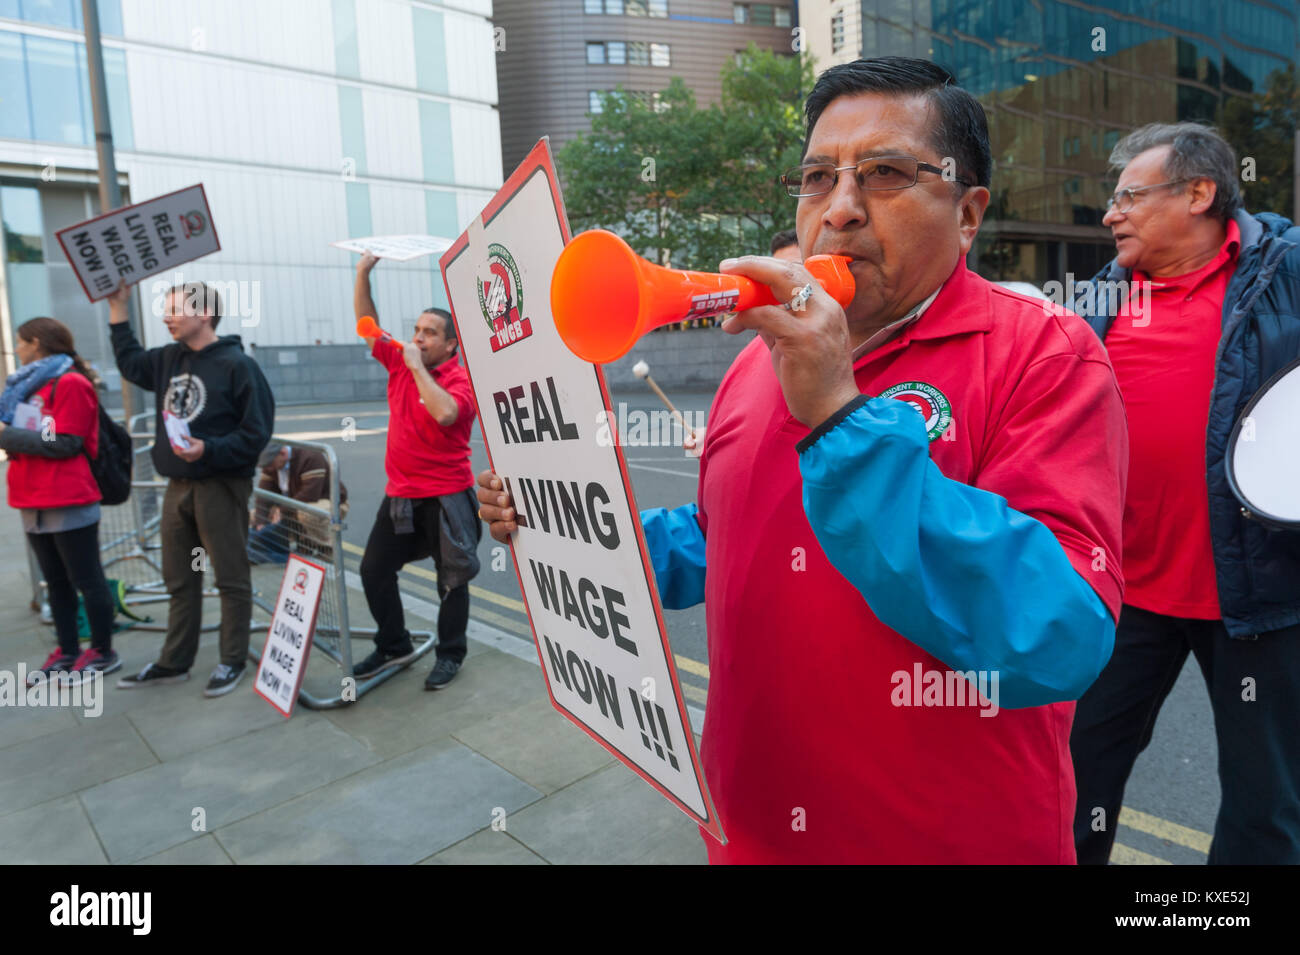 Cleaners make a lot of noise and call for the London Living Wage at the IWGB protest  for Mitie-employed cleaners - Stock Image